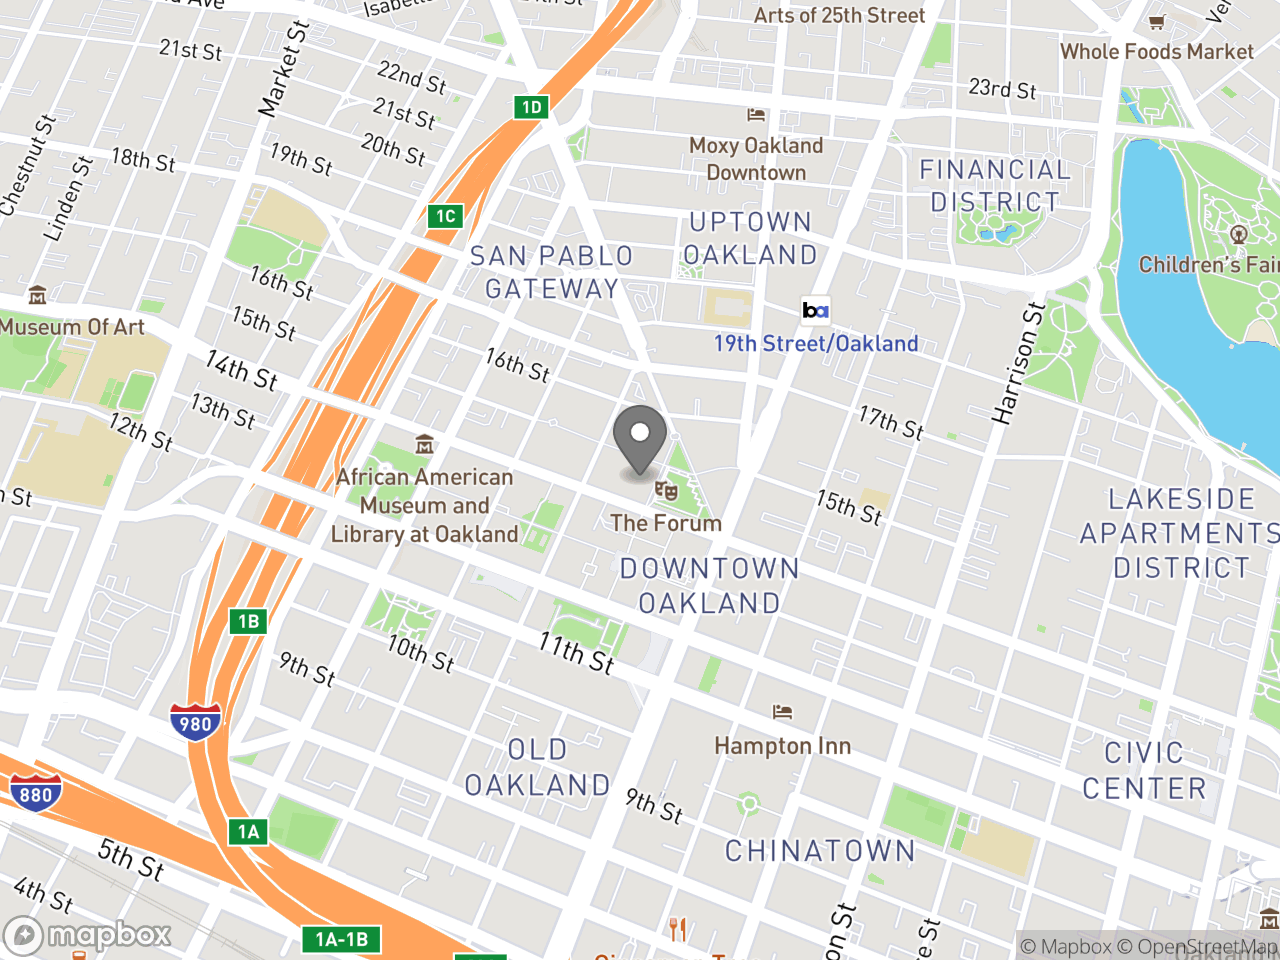 Map image for July 9, 2018 Landmarks Preservation Advisory Board Meeting, located at 1 Frank H. Ogawa Plaza in Oakland, CA 94612